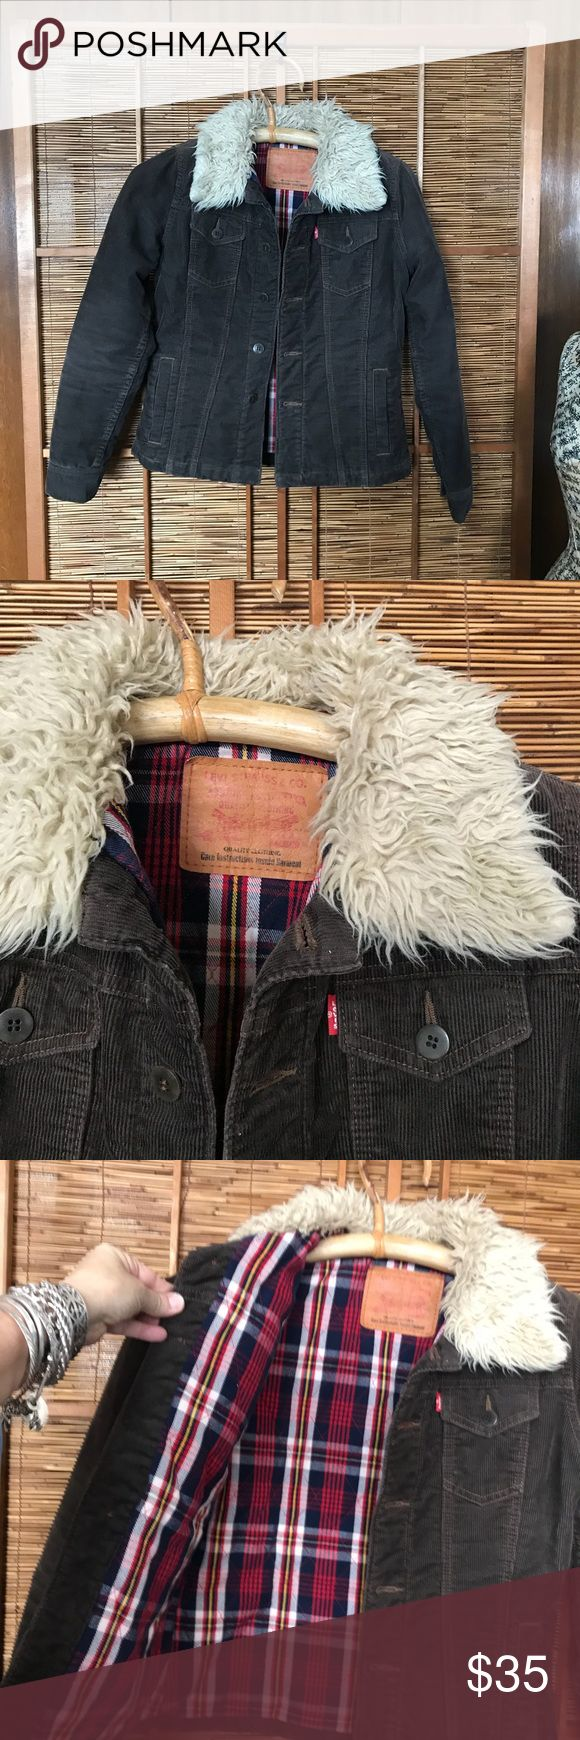 Levis corduroy lined  jean jacket -Stranger Things Cool Levi's brown corduroy button up trucker jacket lined in quilted flannel and faux fur collar.  Size M.  In great condition. This jacket reminds me of the kids in Stranger Things! They were all wearing jackets like this! Levi's Jackets & Coats Jean Jackets